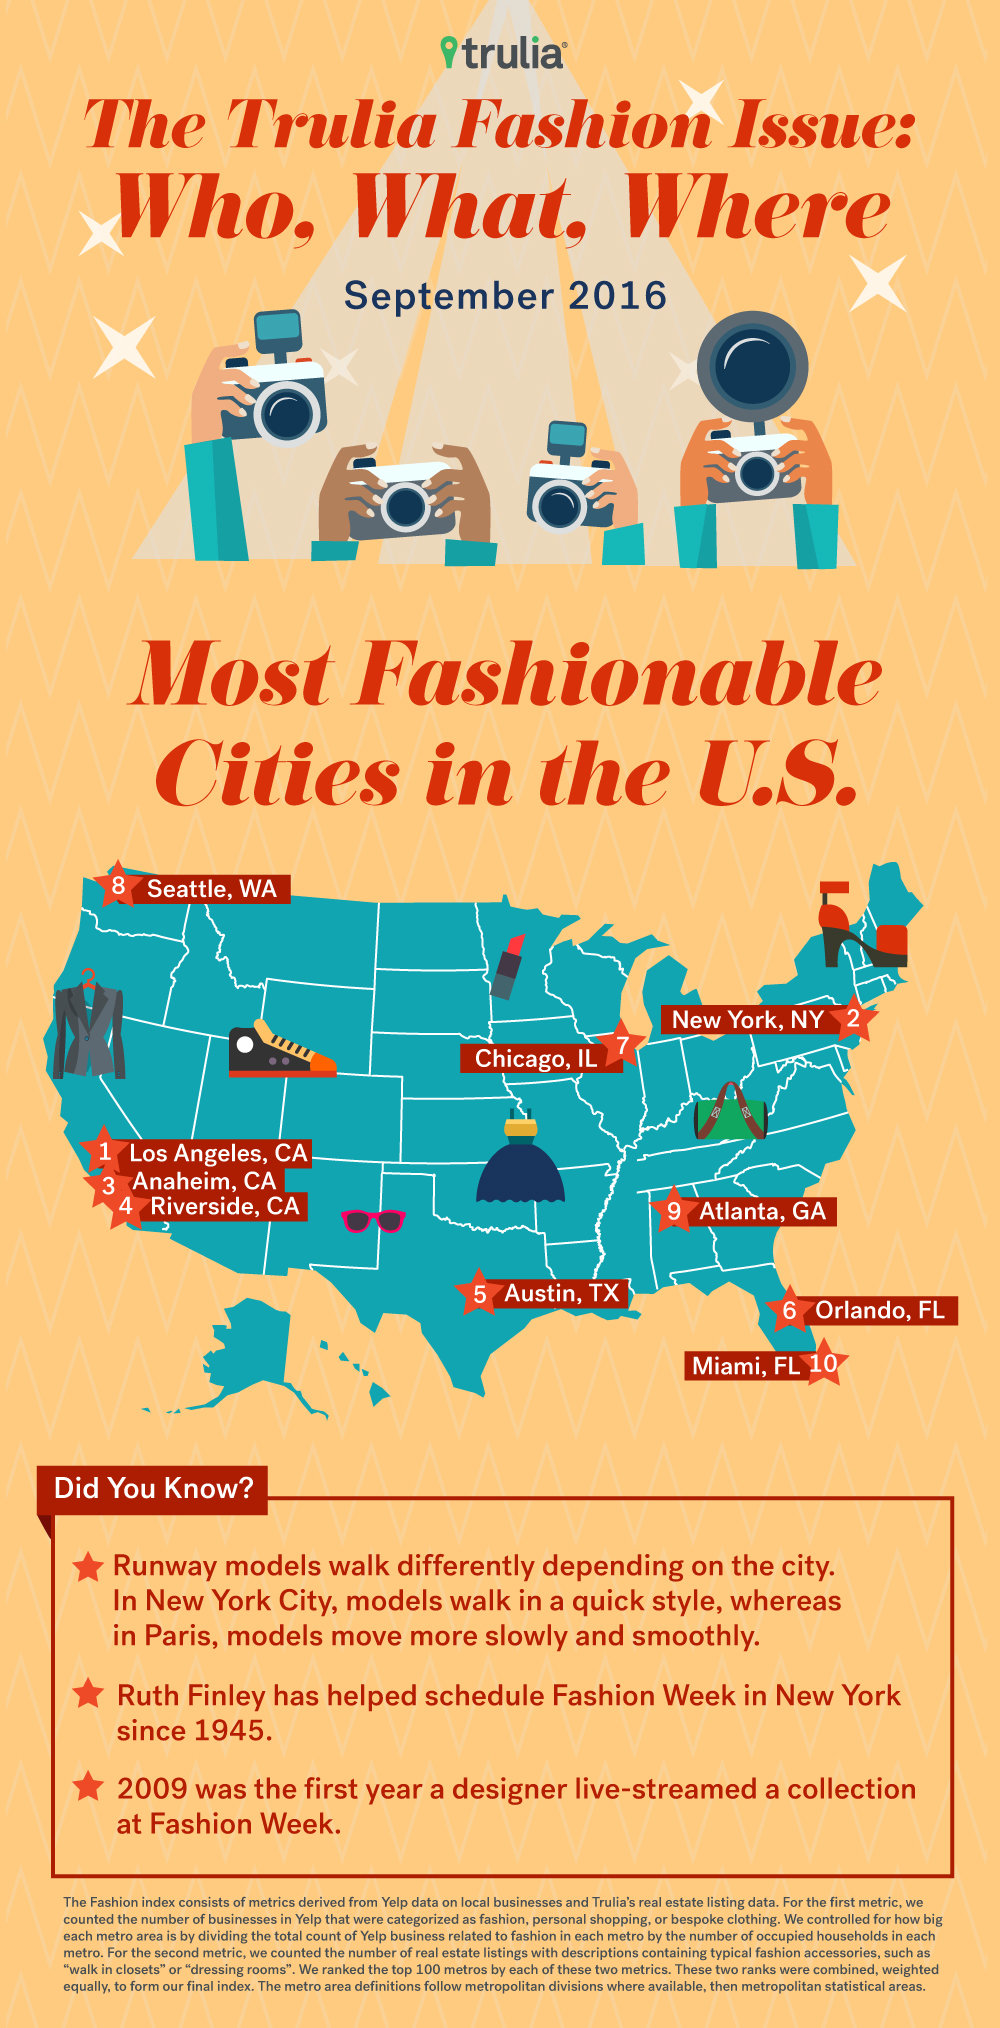 Most Fashionable Cities in the US - Embed 1